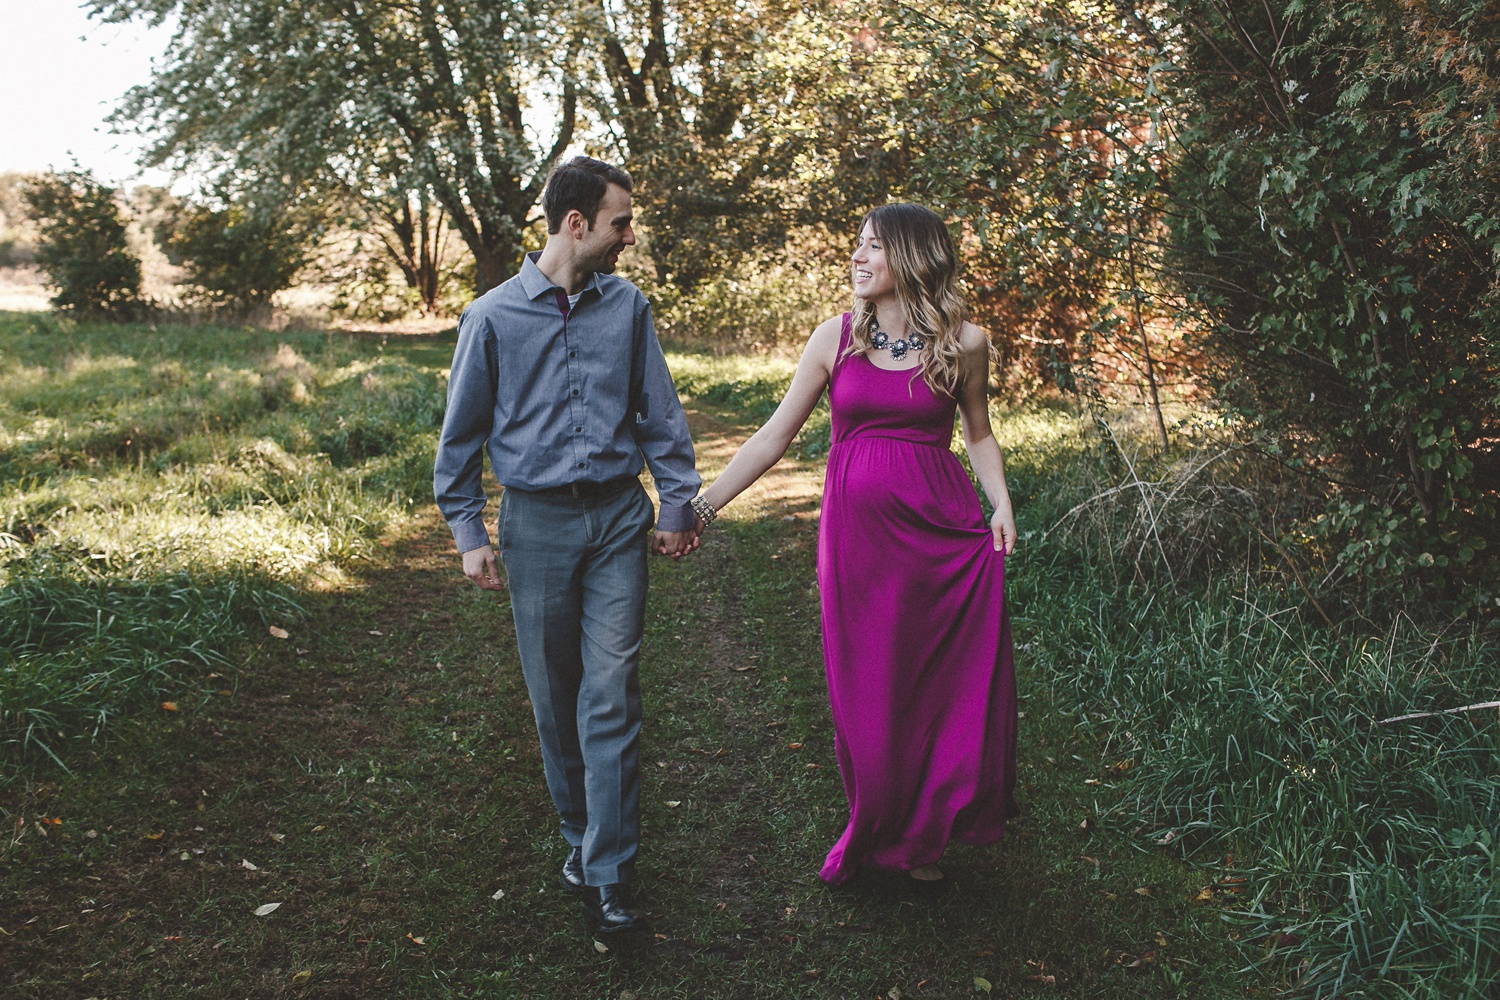 dekalb_IL_maternity_portrait_photographer_0025.jpg